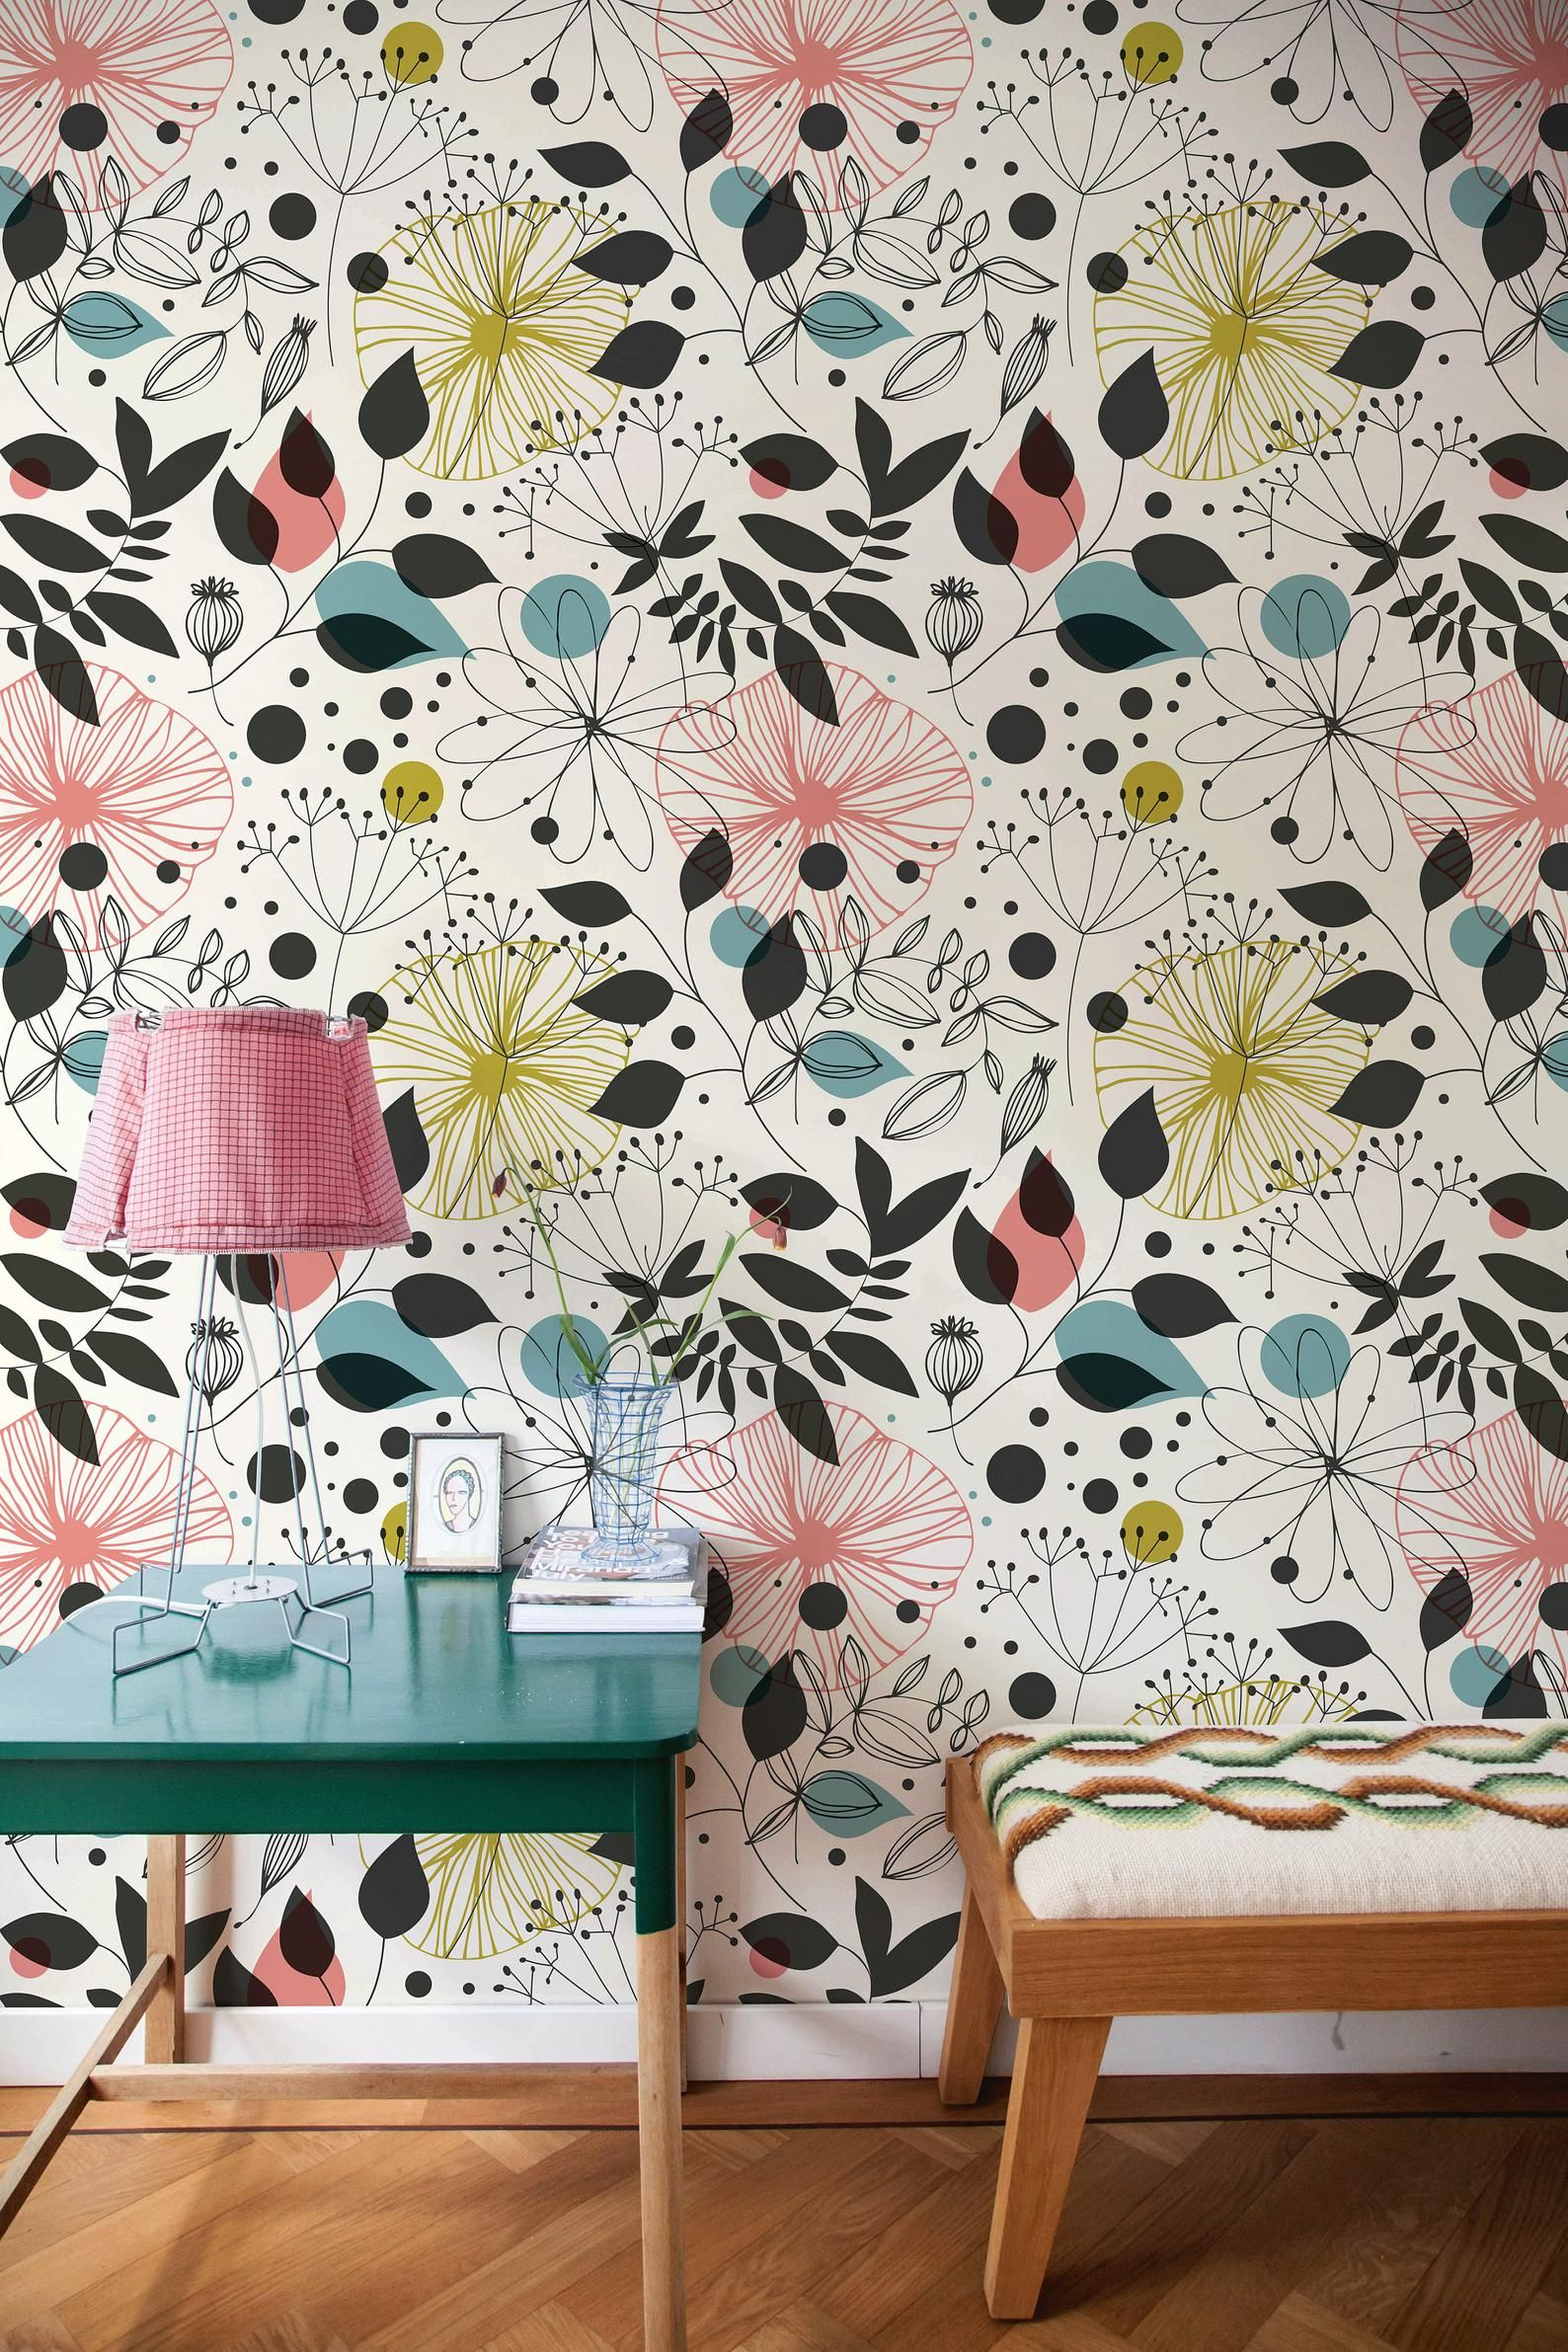 Removable Wallpaper Peel And Stick Wallpaper Wall Paper Wall Etsy In 2021 Vintage Floral Wallpapers Wall Wallpaper Removable Wallpaper